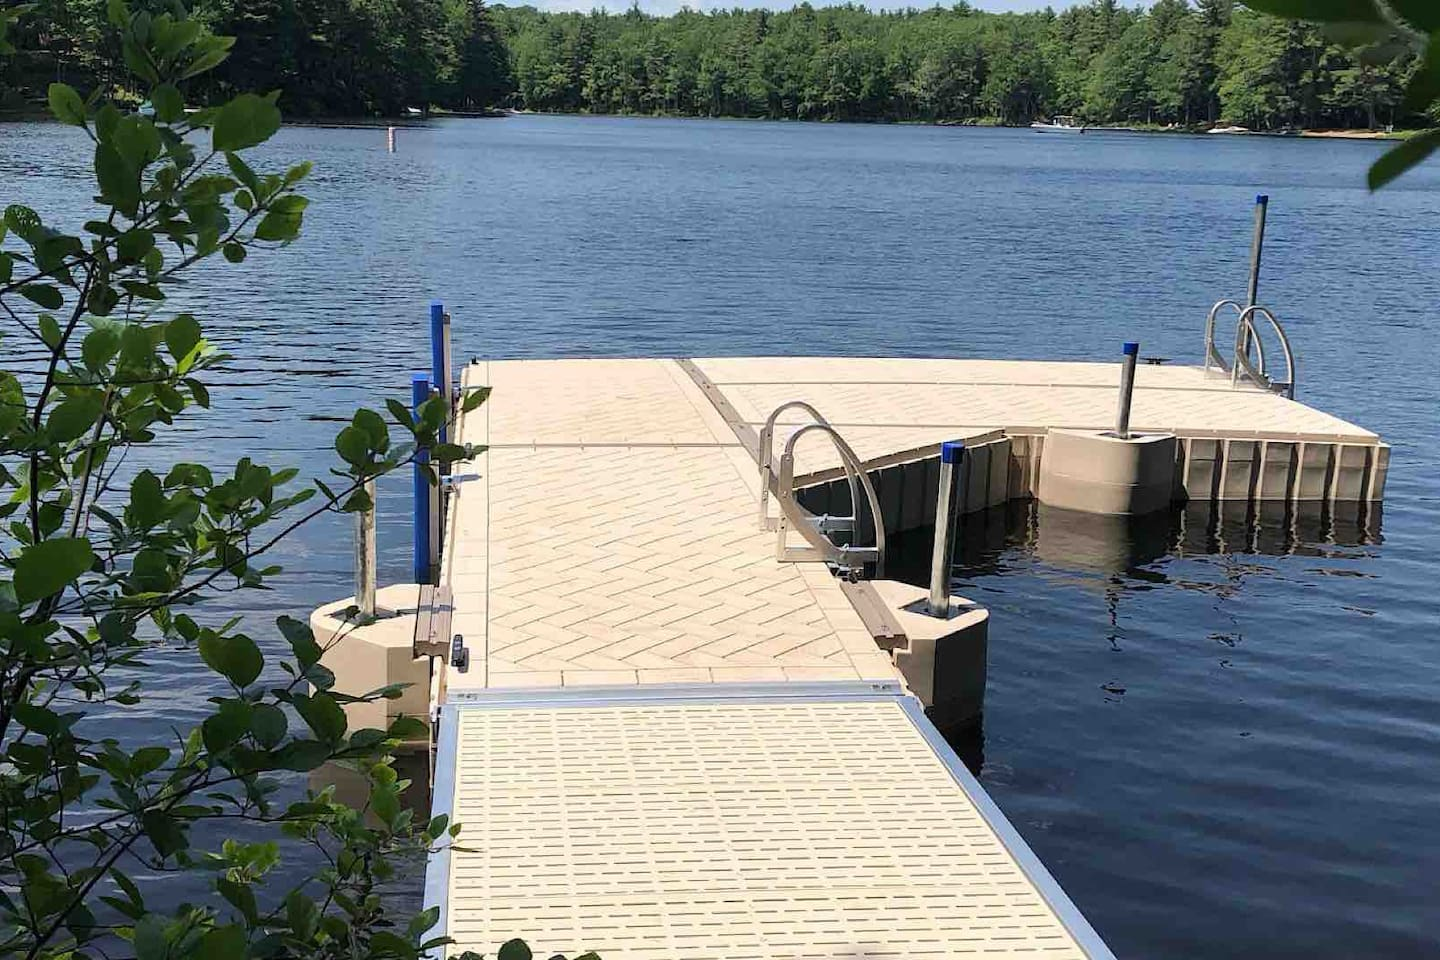 Fabulous new dock for swimming or to park your boat!